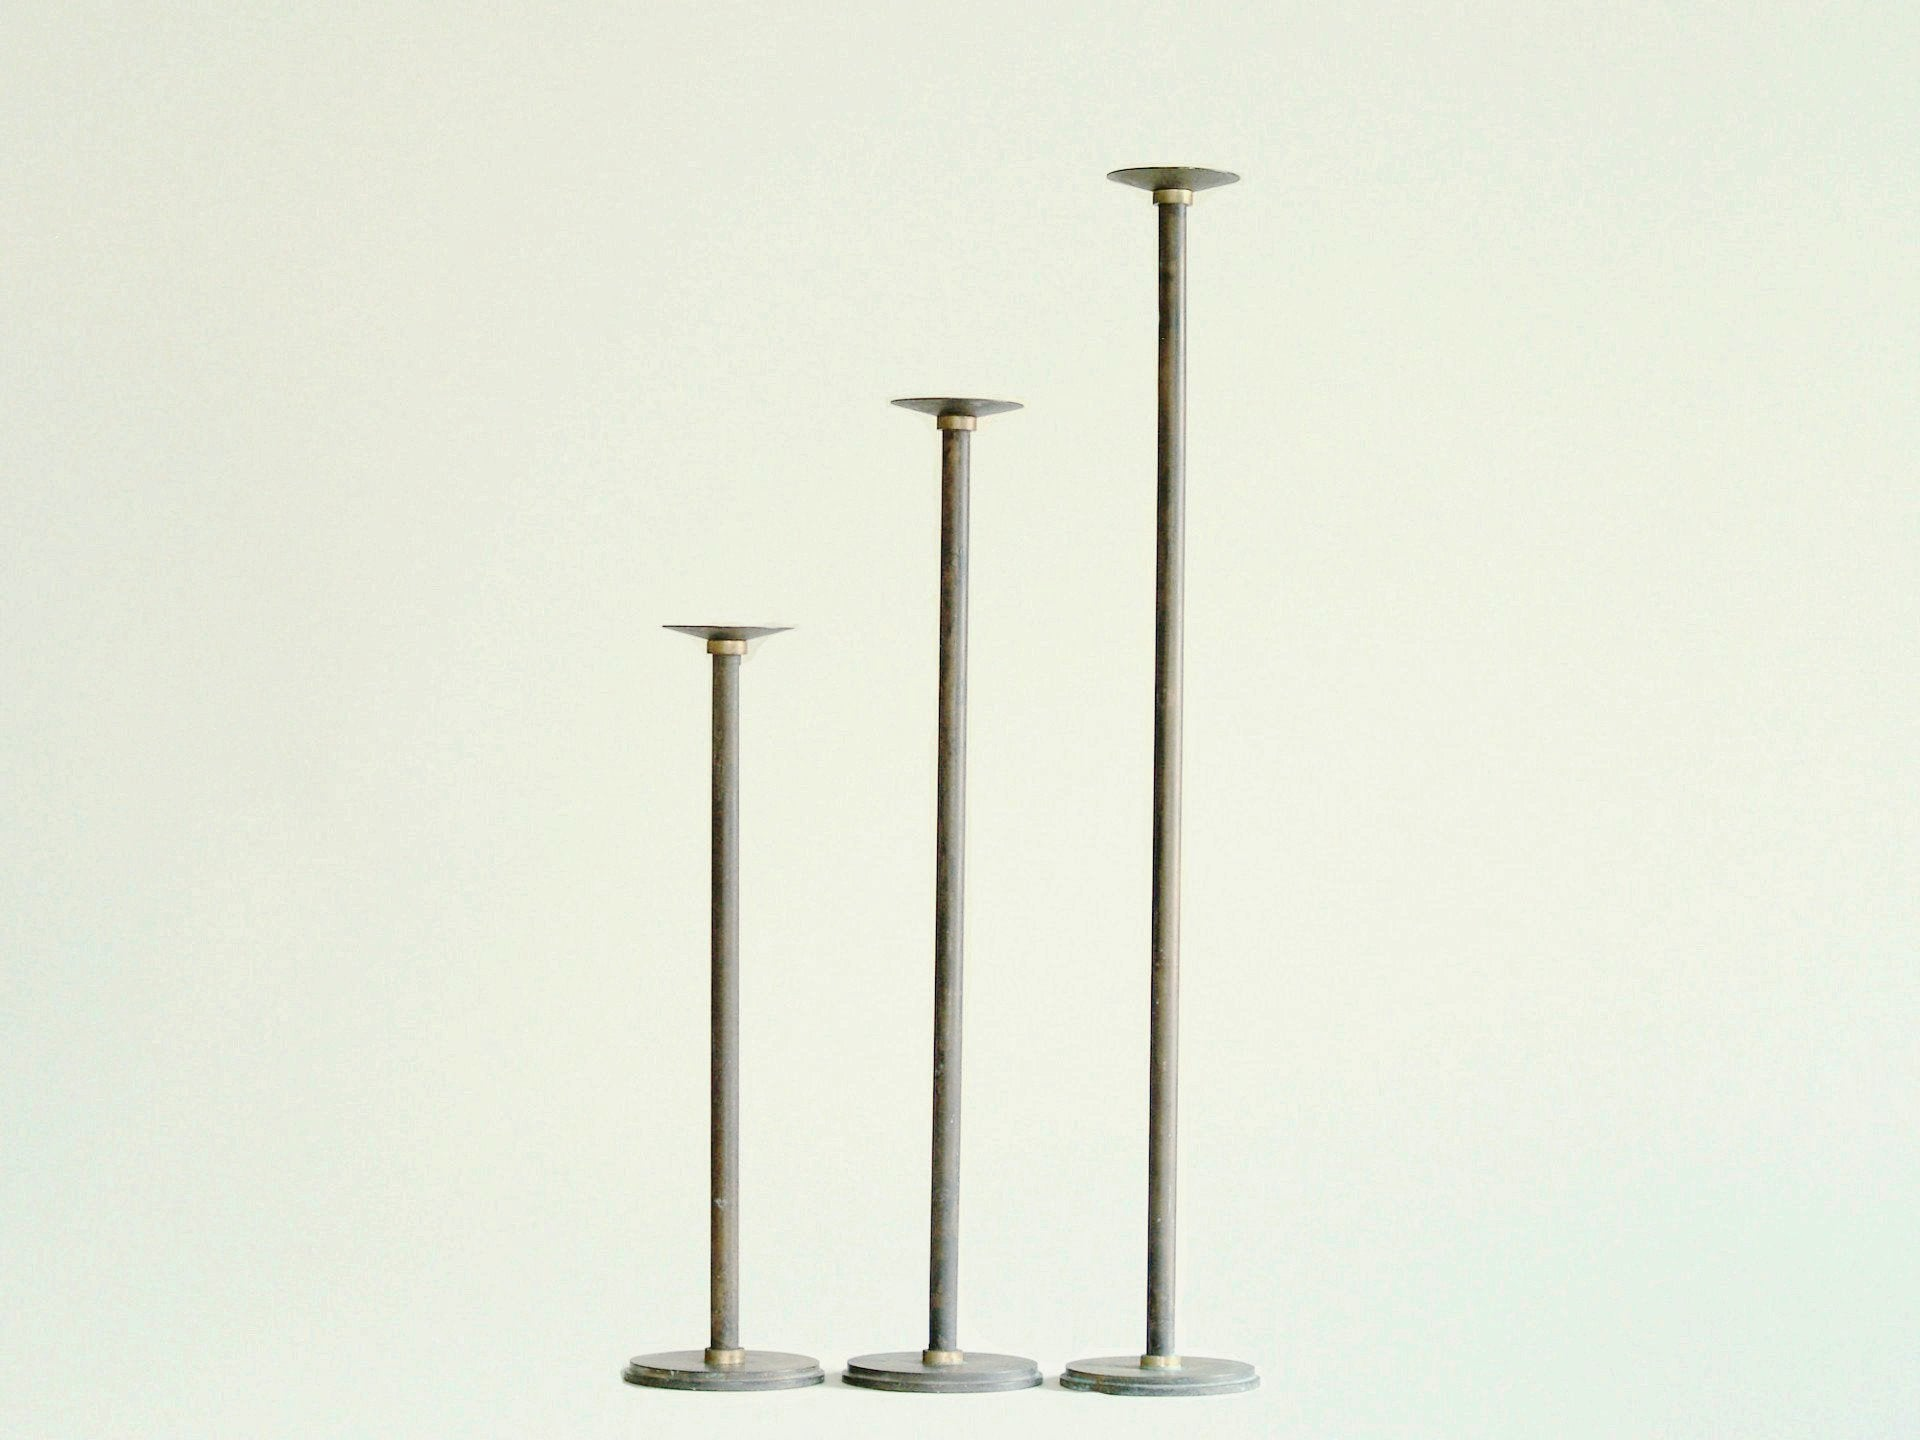 Suite de flambeaux néoclassiques monumentaux, Scandinavie (vers 1920)..Set of monumental neoclassical candle holders, Scandinavia (ca. 1920)